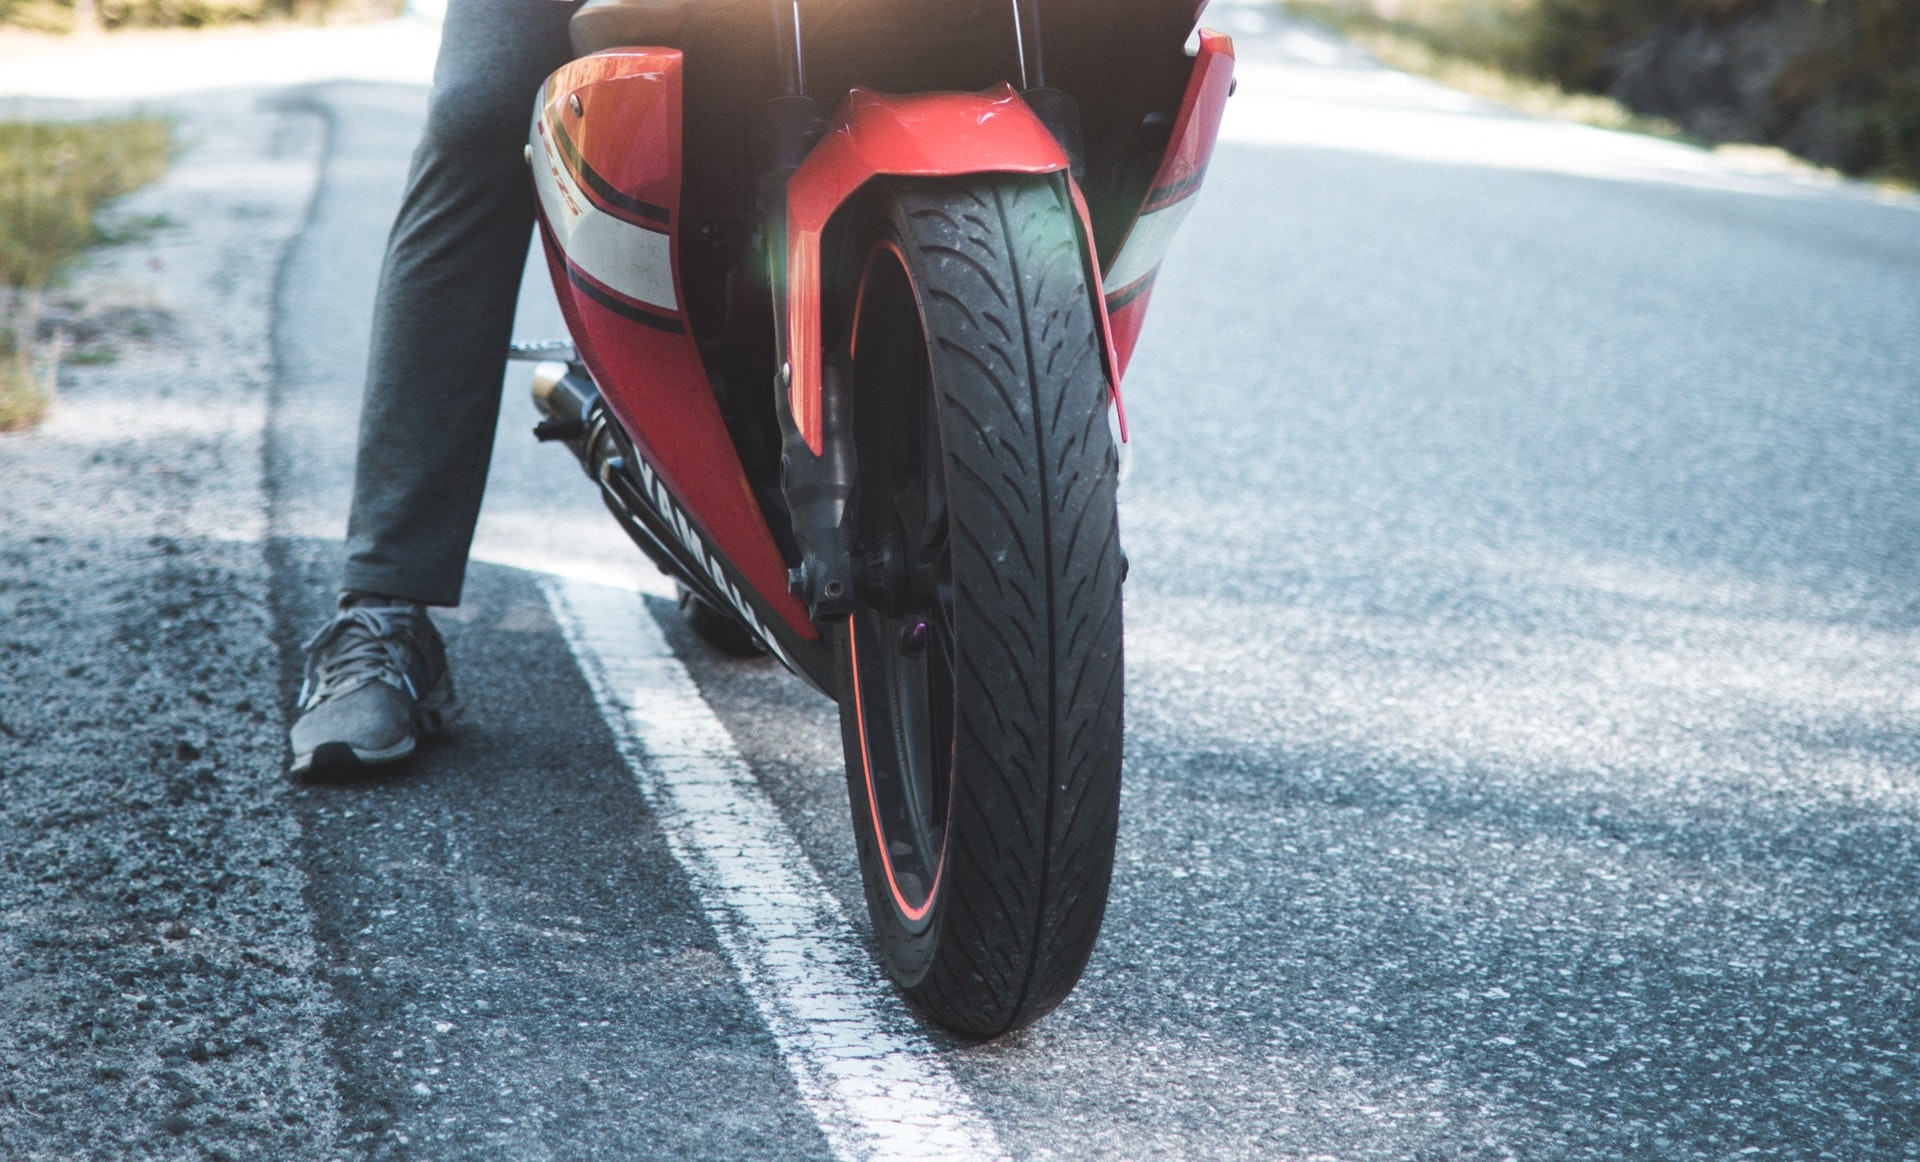 Is Lane Splitting Legal for Motorcycles in New Jersey?